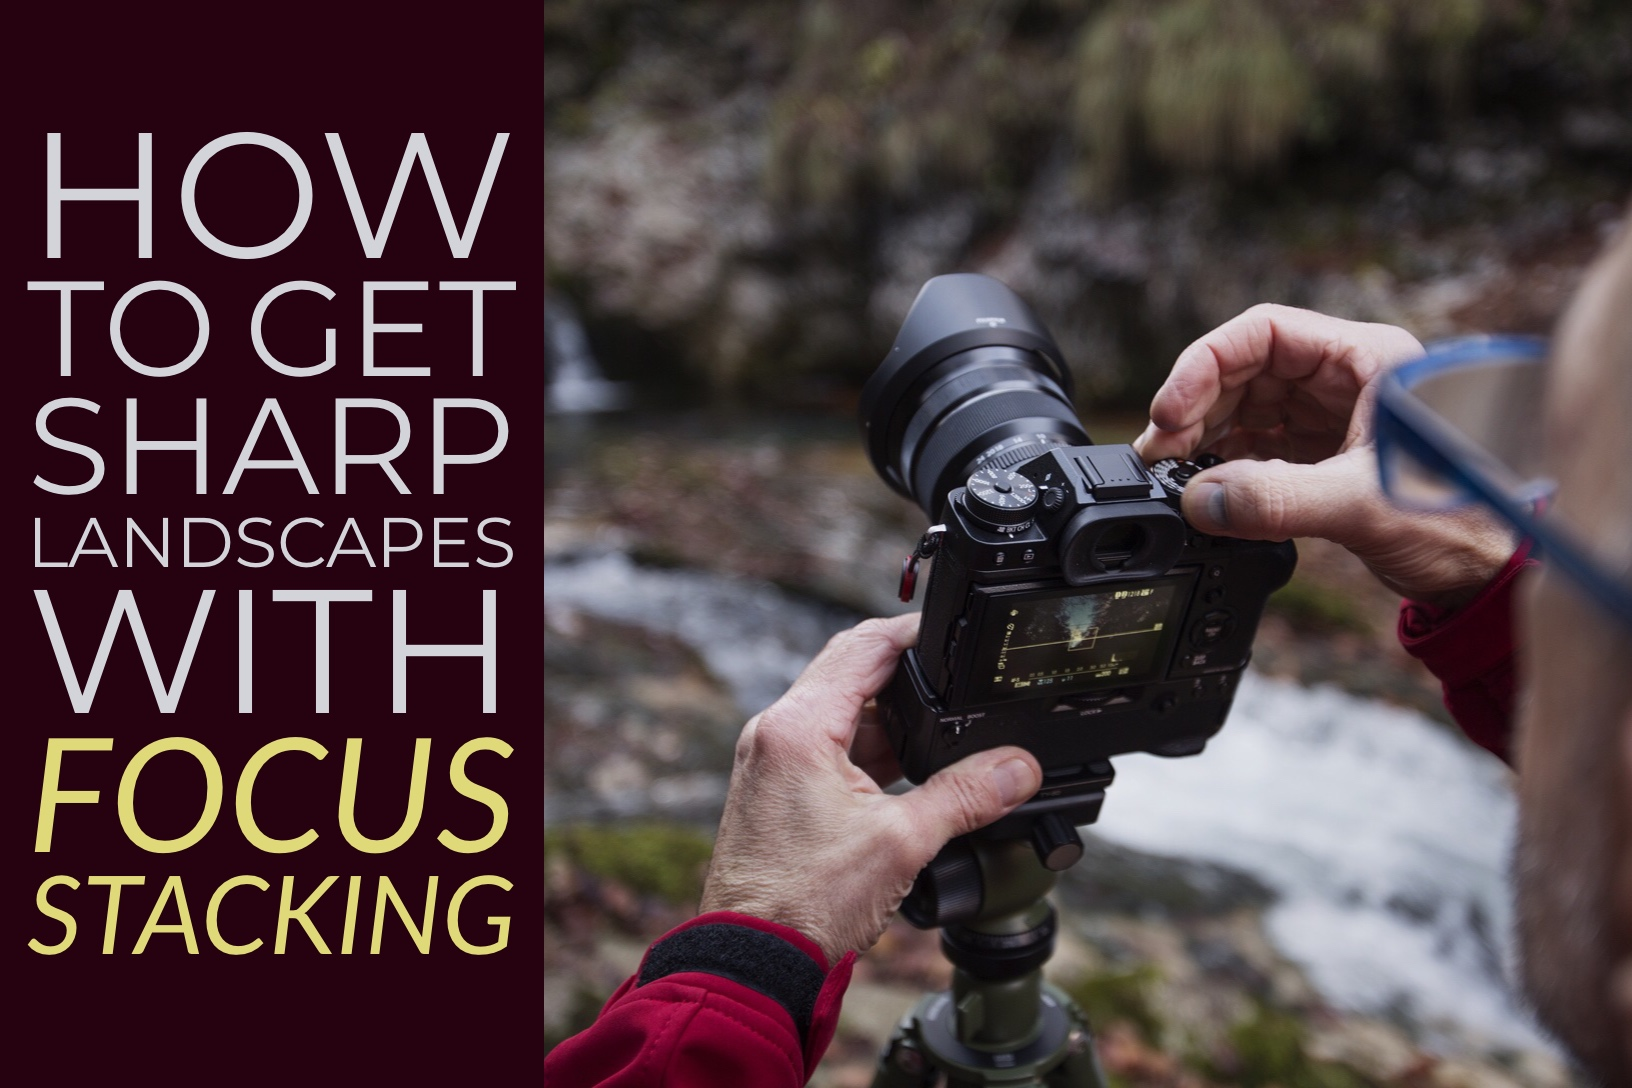 How to Get Landscapes Sharp with Focus Stacking